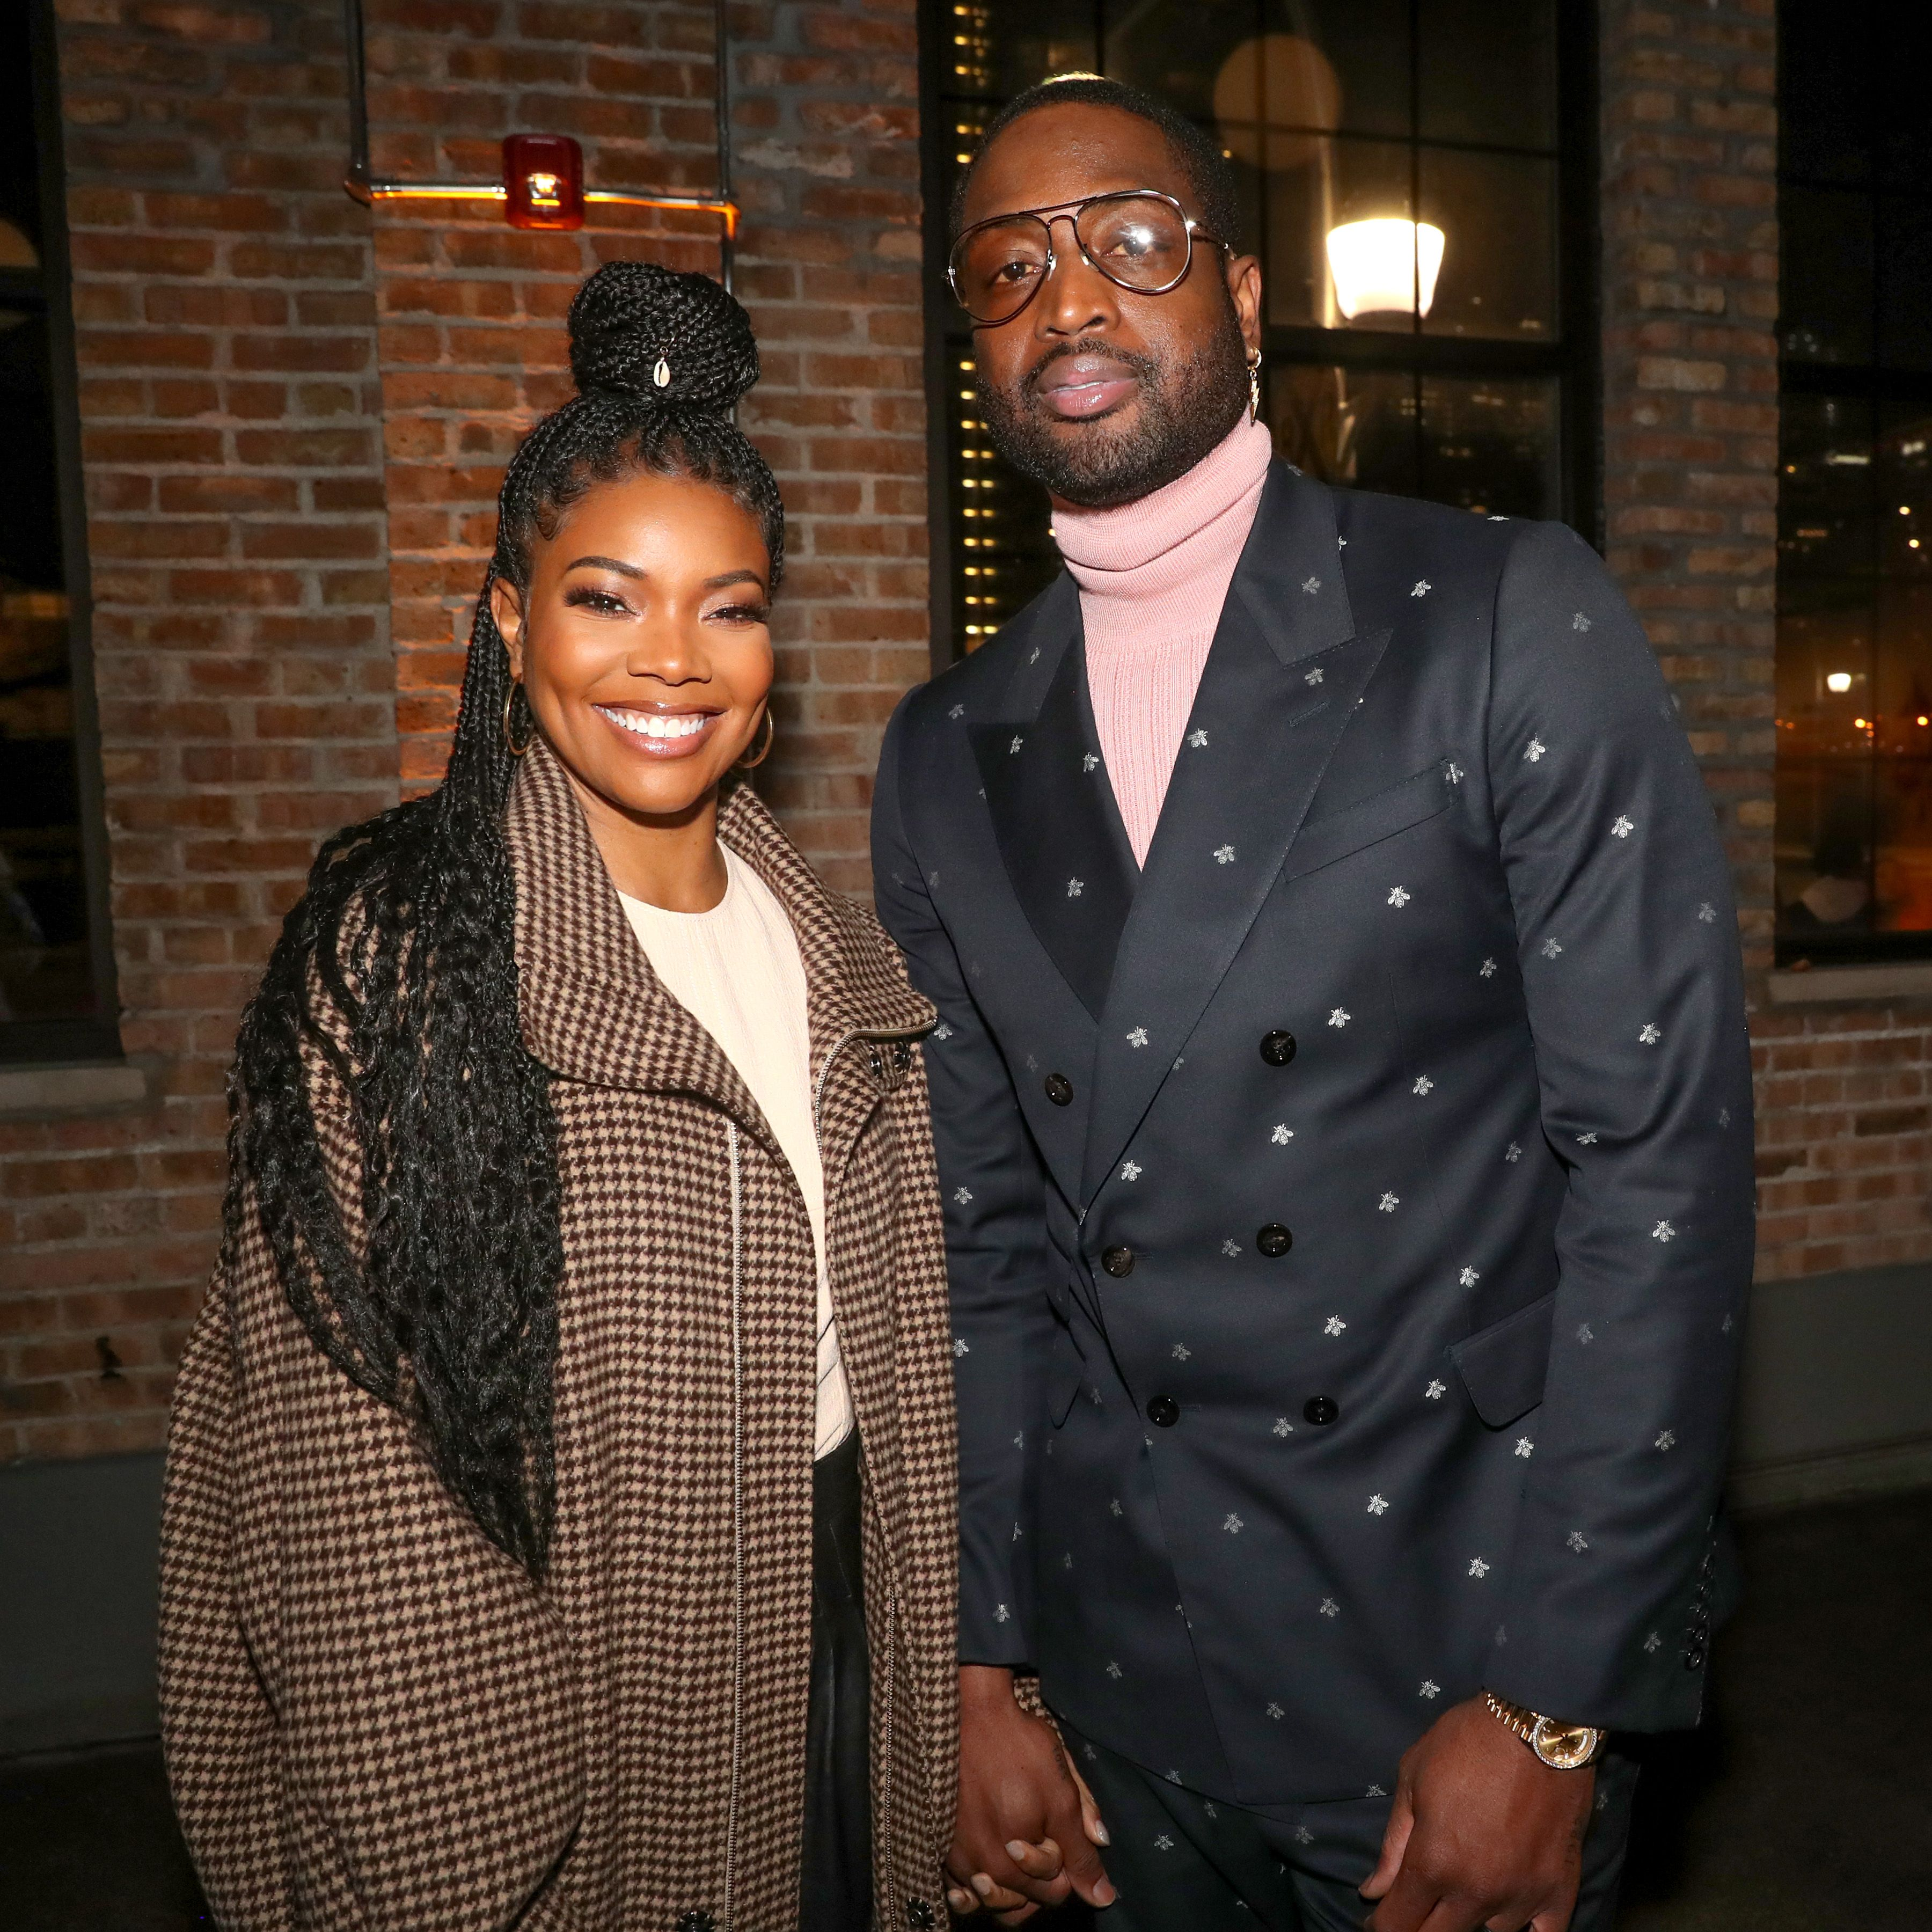 """Gabrielle Union and Dwyane Wade during """"Stance Spades At NBA All-Star 2020"""" at City Hall on February 15, 2020 in Chicago, Illinois. 